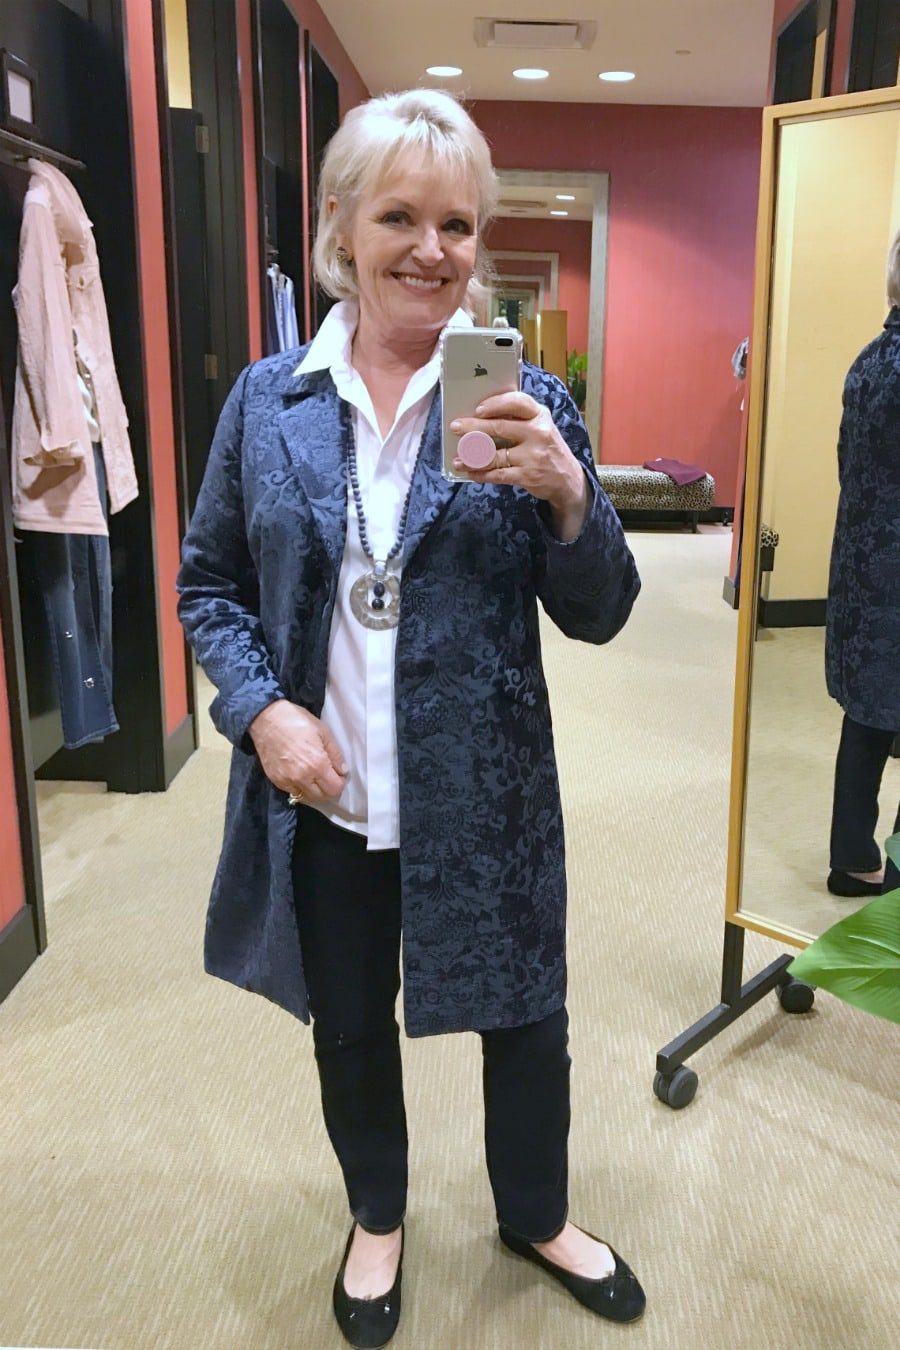 Jennifer of A Well Styled Life wearing Blue Jacquard jacket from Chioco's